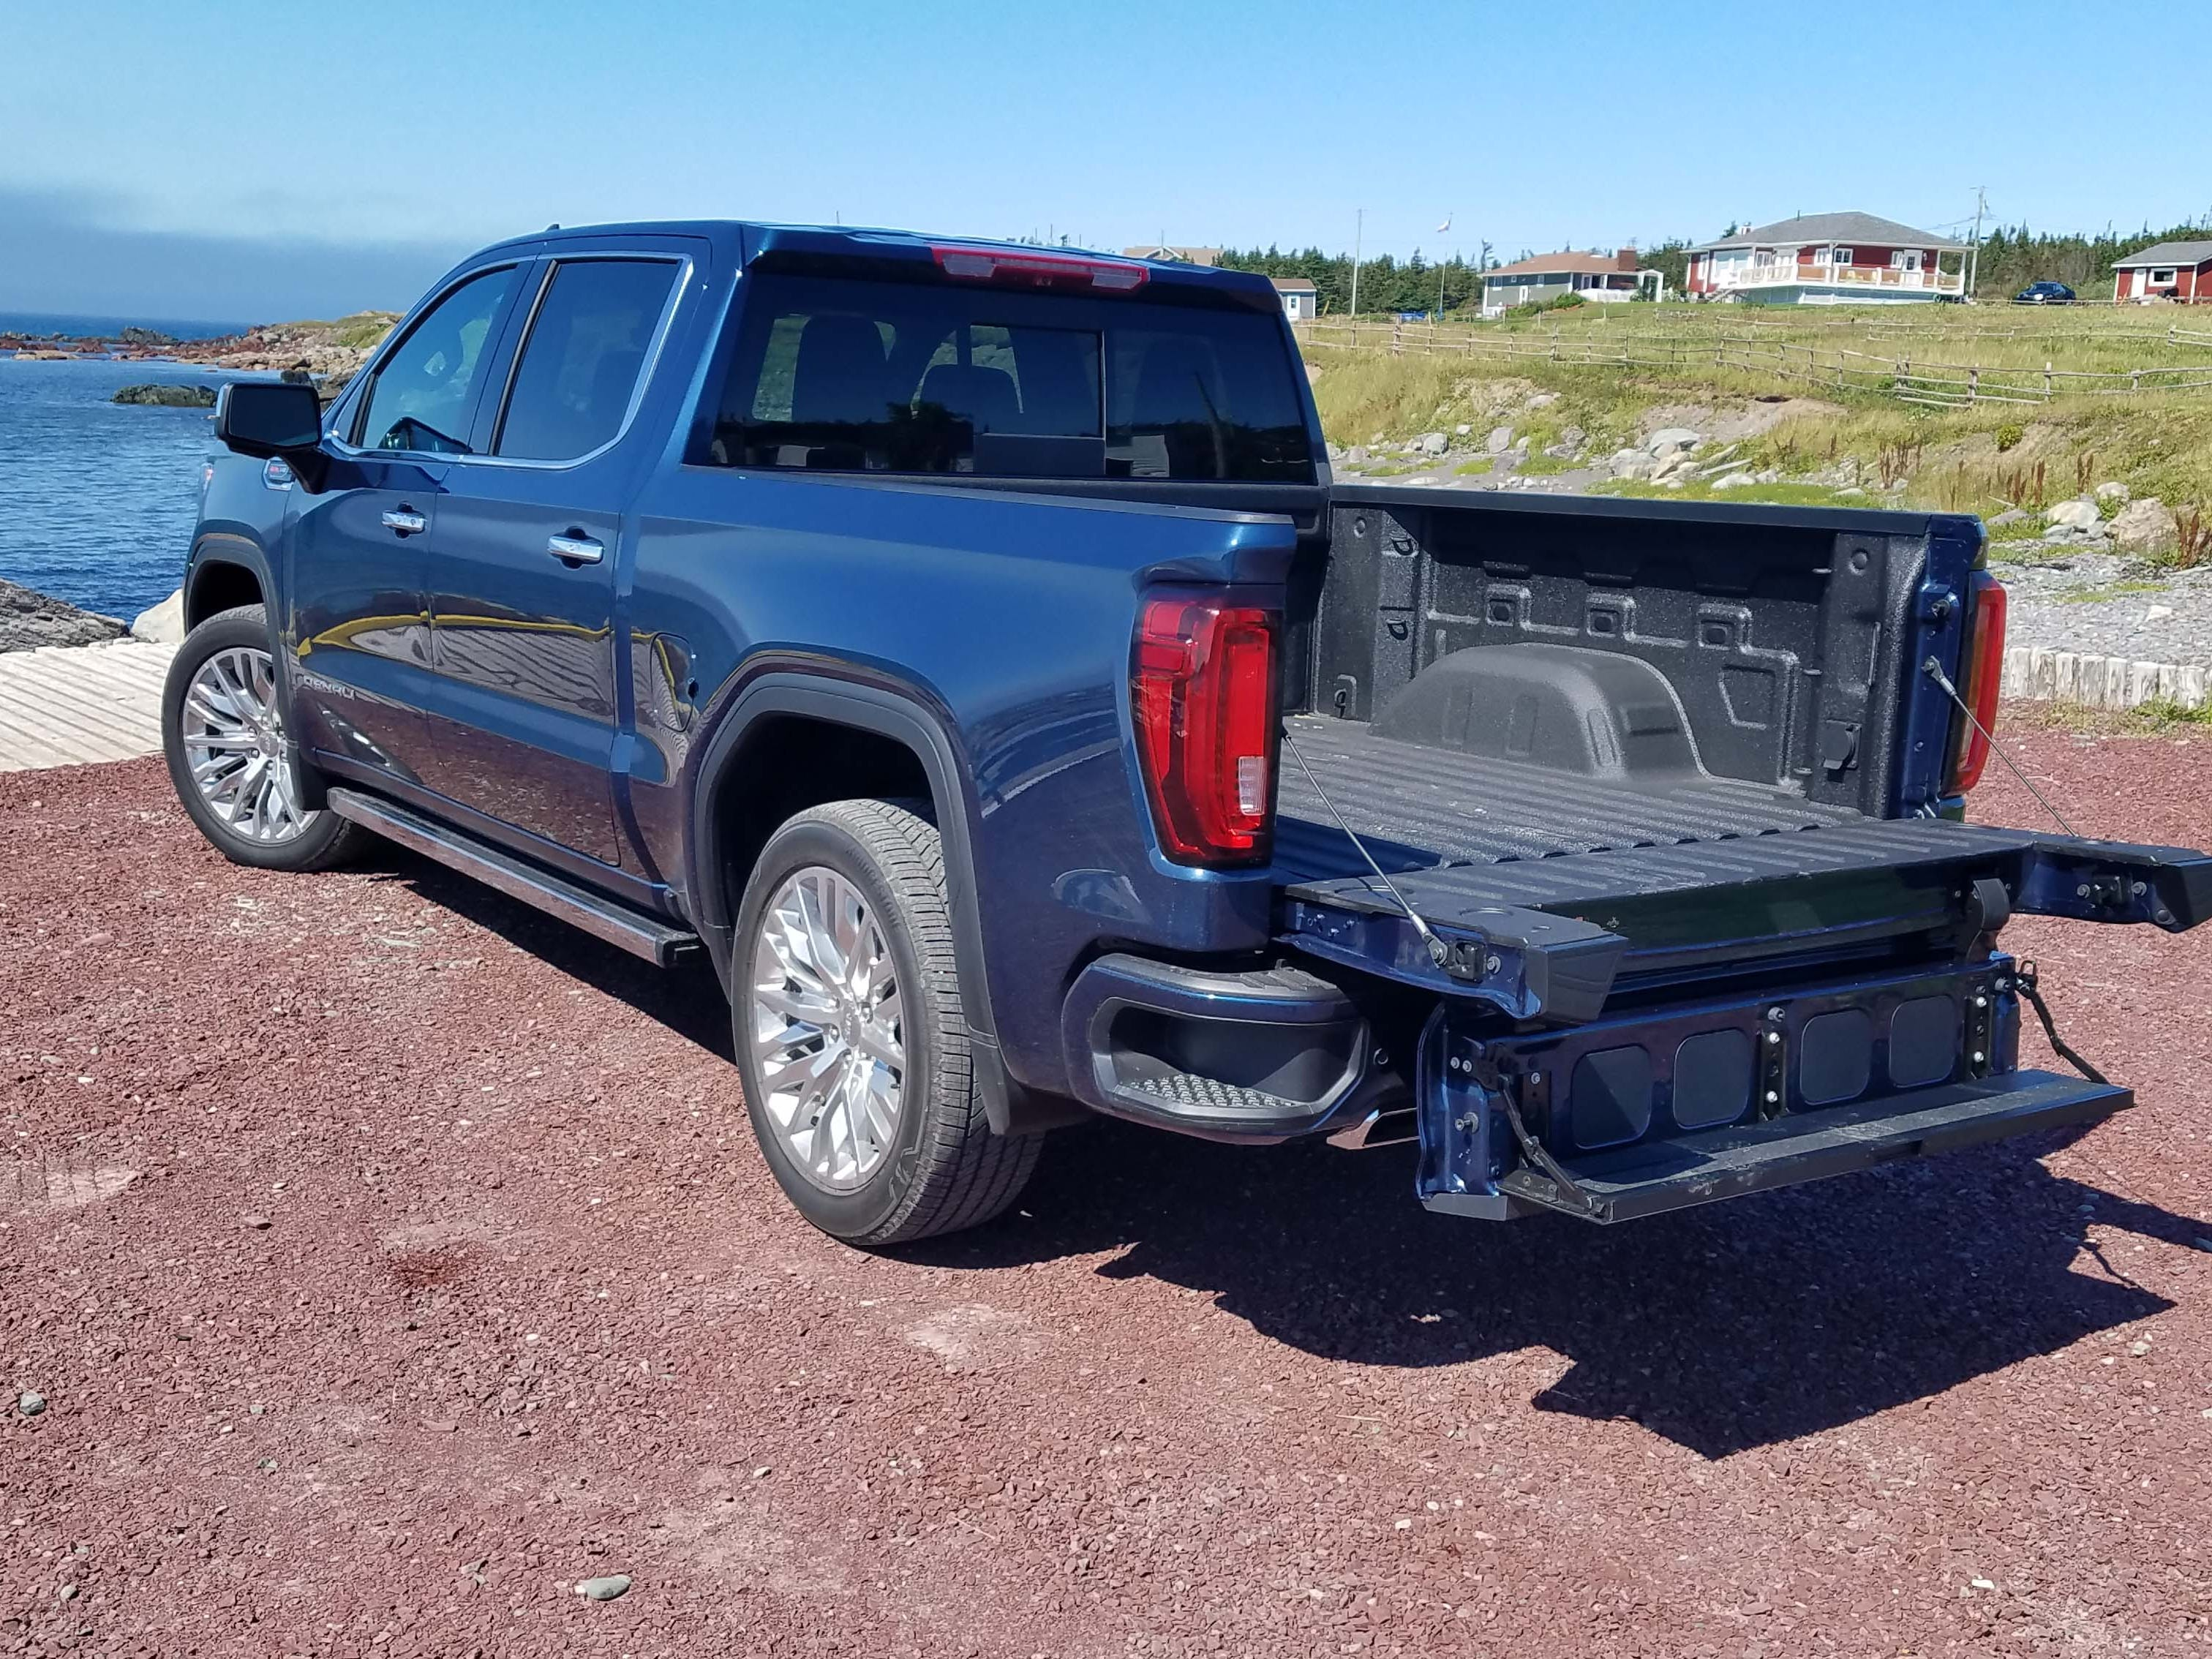 The 2019 GMC Sierra separates itself from the Chevy brand with exclusive features like a six-way MultiPro bed. The bed is standard on upper trims SLT, Denali, and AT4.